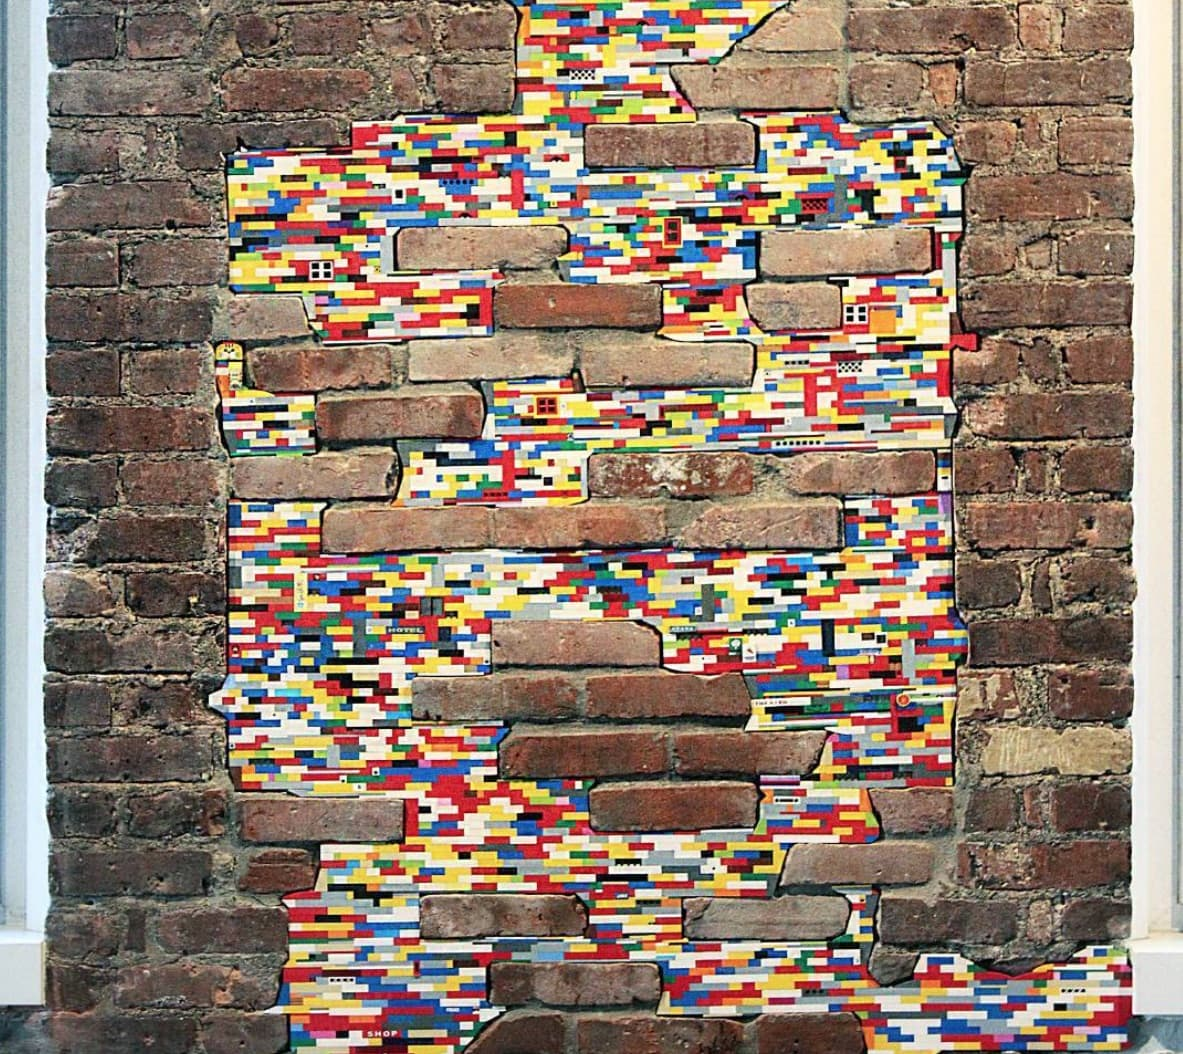 Jan Vormann Dispatchwork Lego Street Art